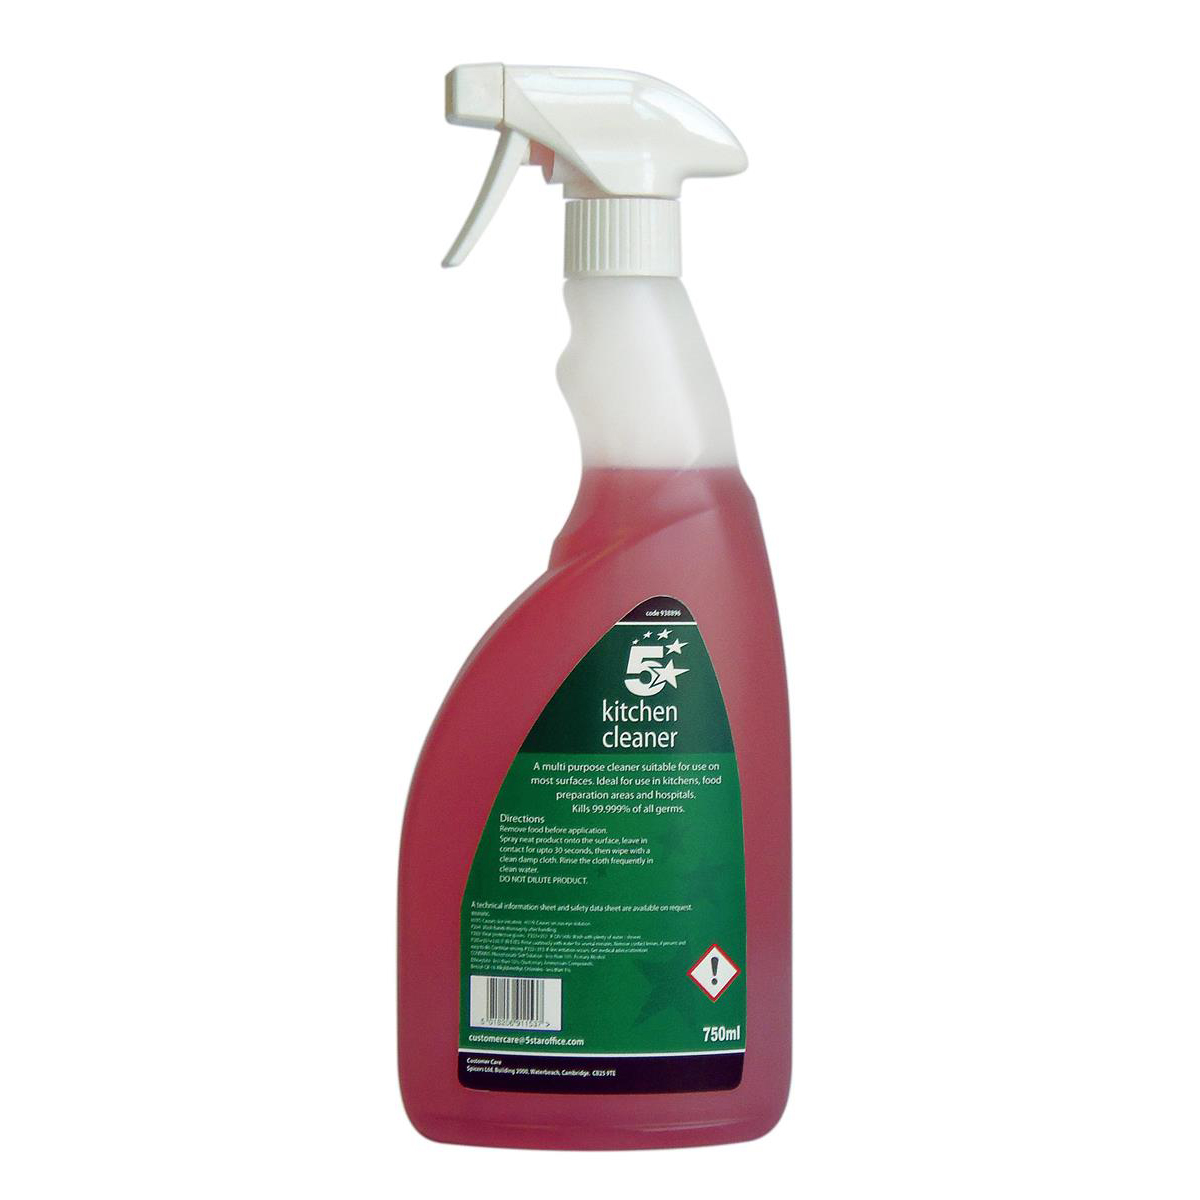 Disinfectant 5 Star Facilities Kitchen Cleaner 750ml